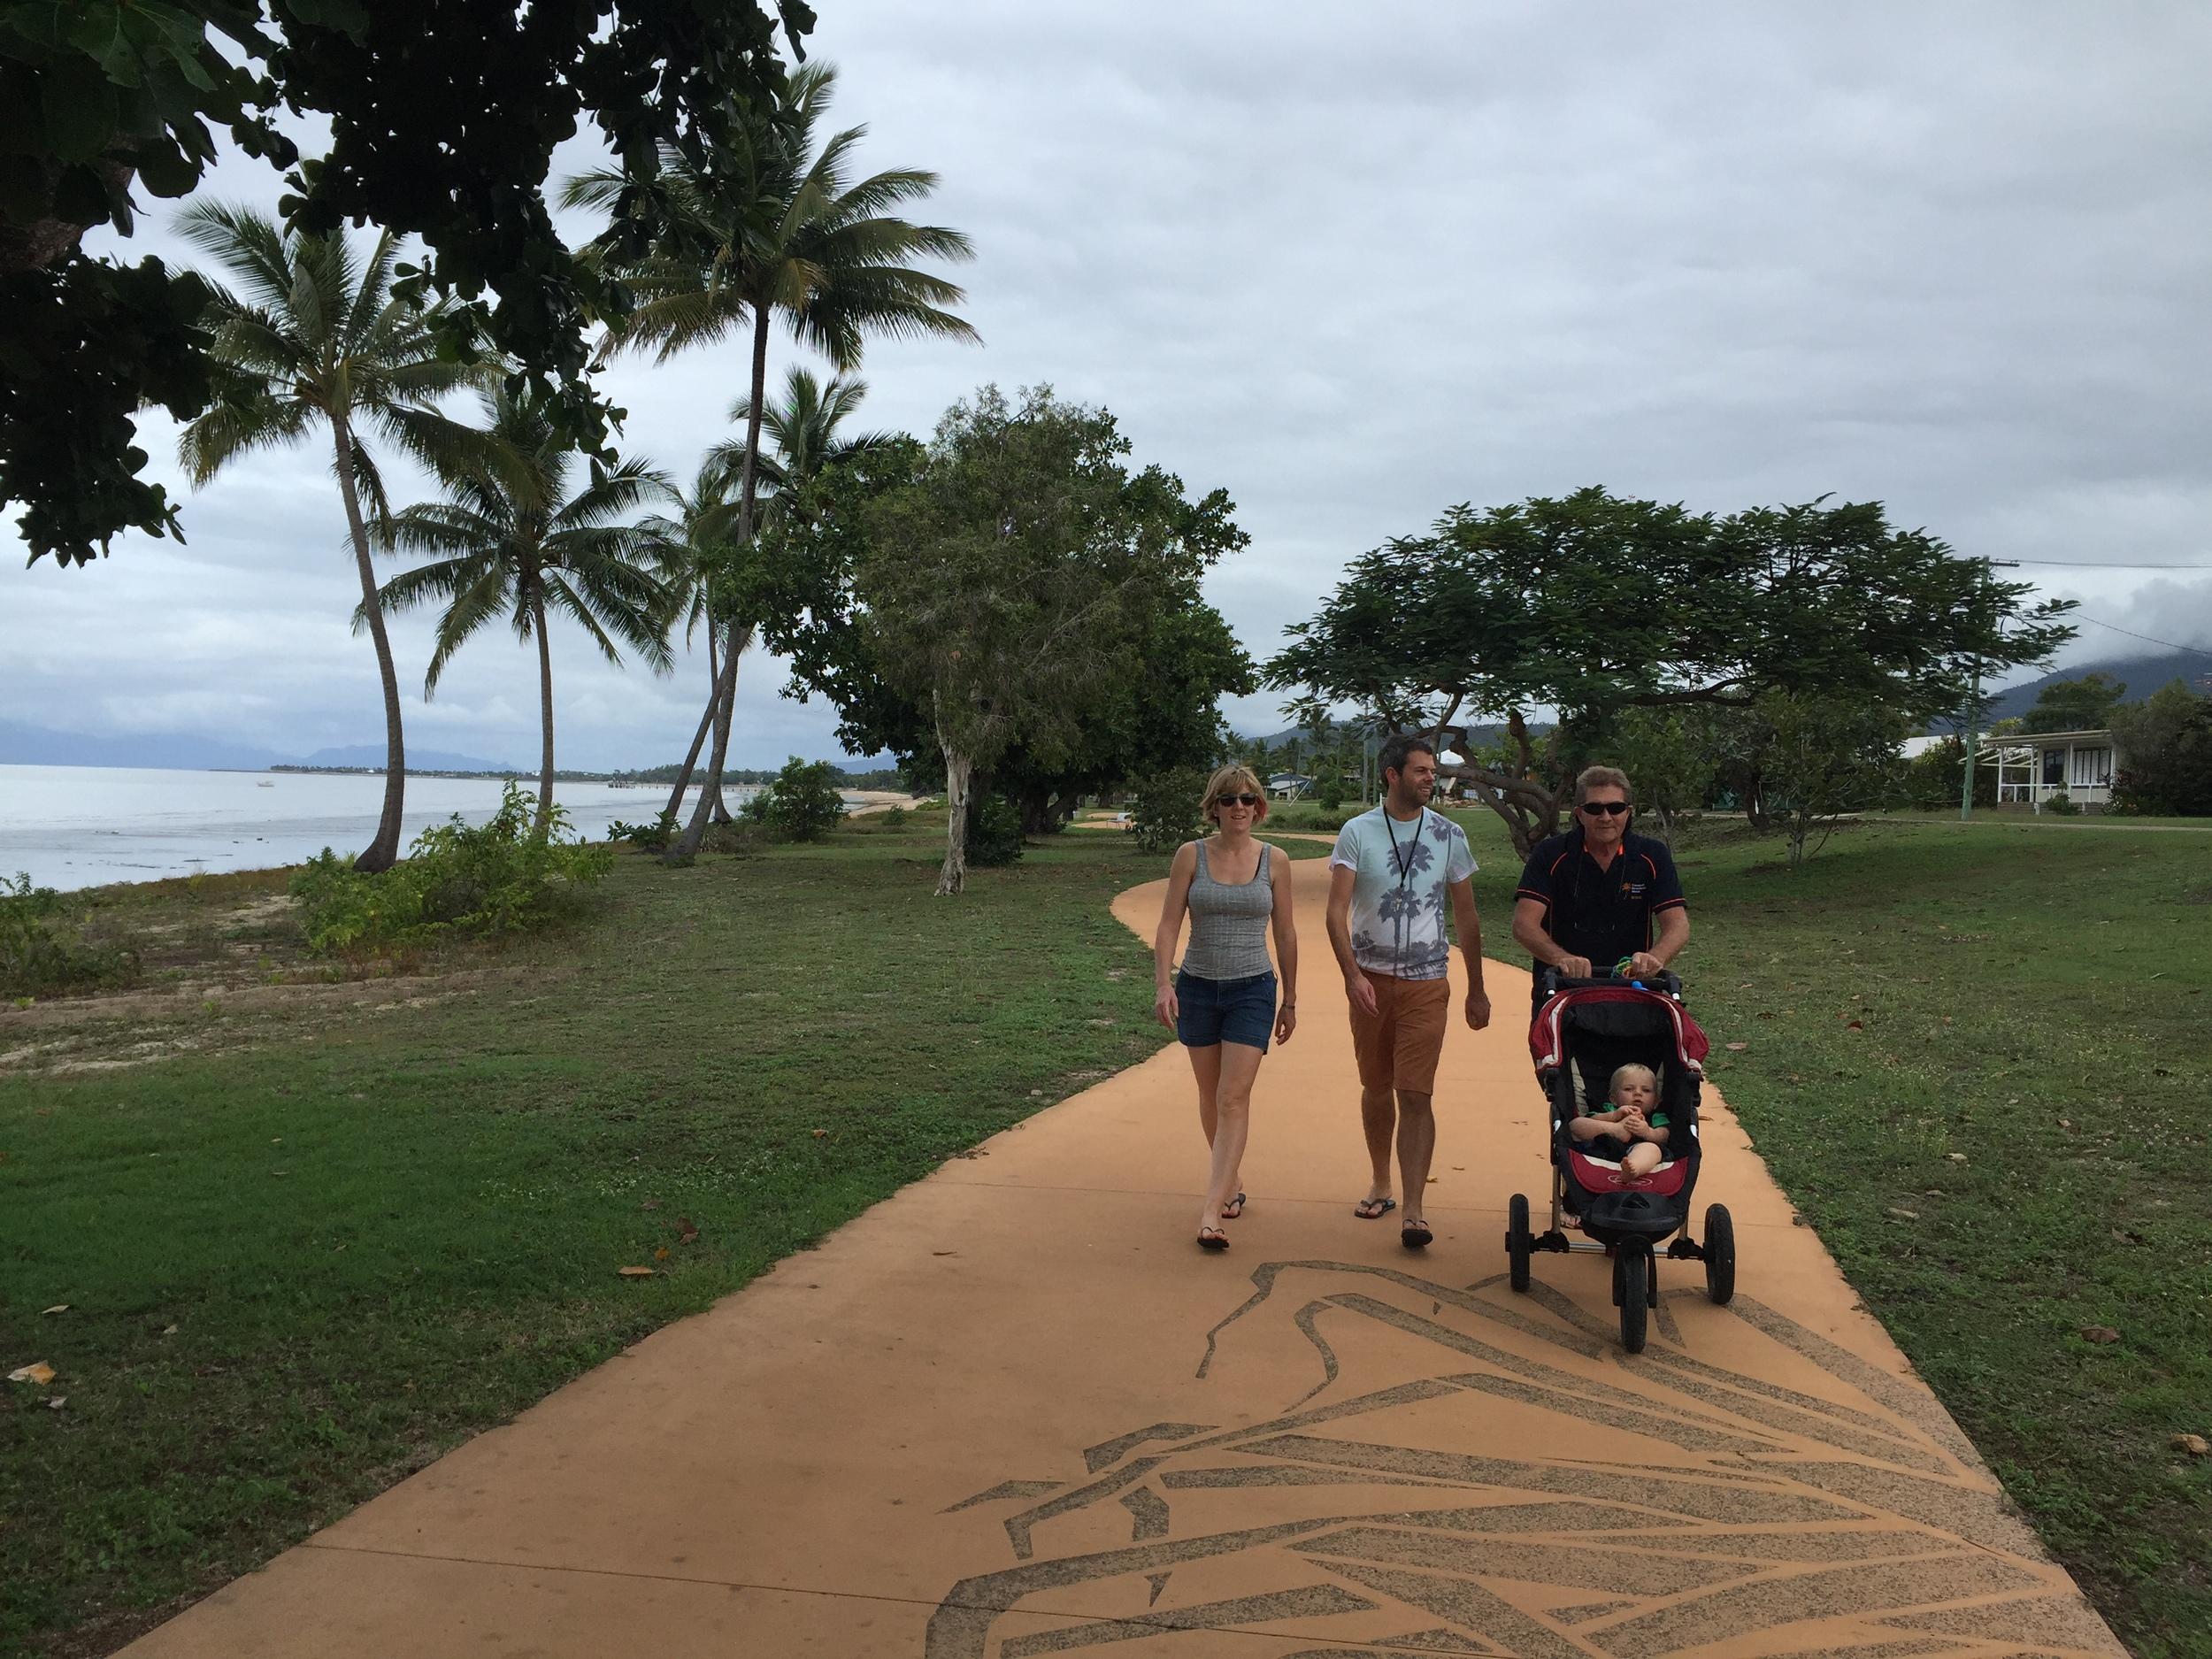 Cardwell Foreshore Pathway has playgrounds, BBQ's & Coral Sea Memorial Park